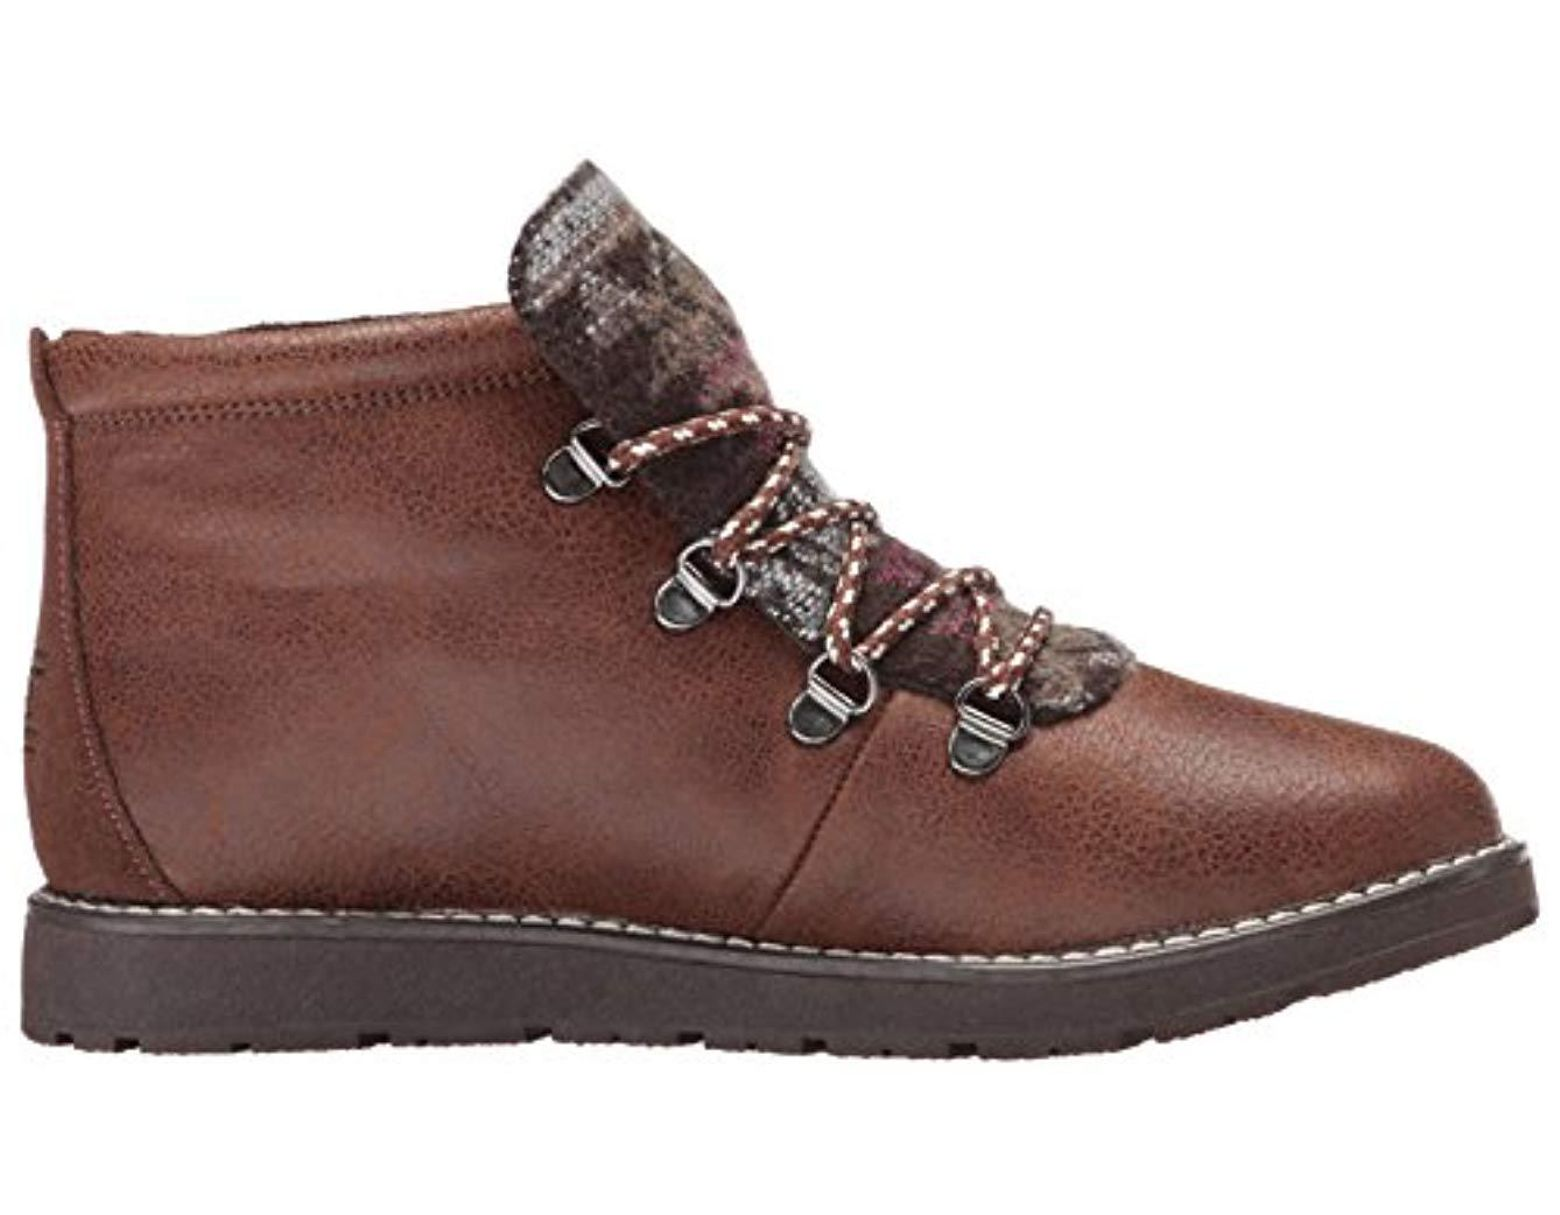 d0ef36eabcd3c Women's Brown Bobs Bobs Alpine-keep Trekking. Aztec Tongue Hiking Boot W  Memory Foam